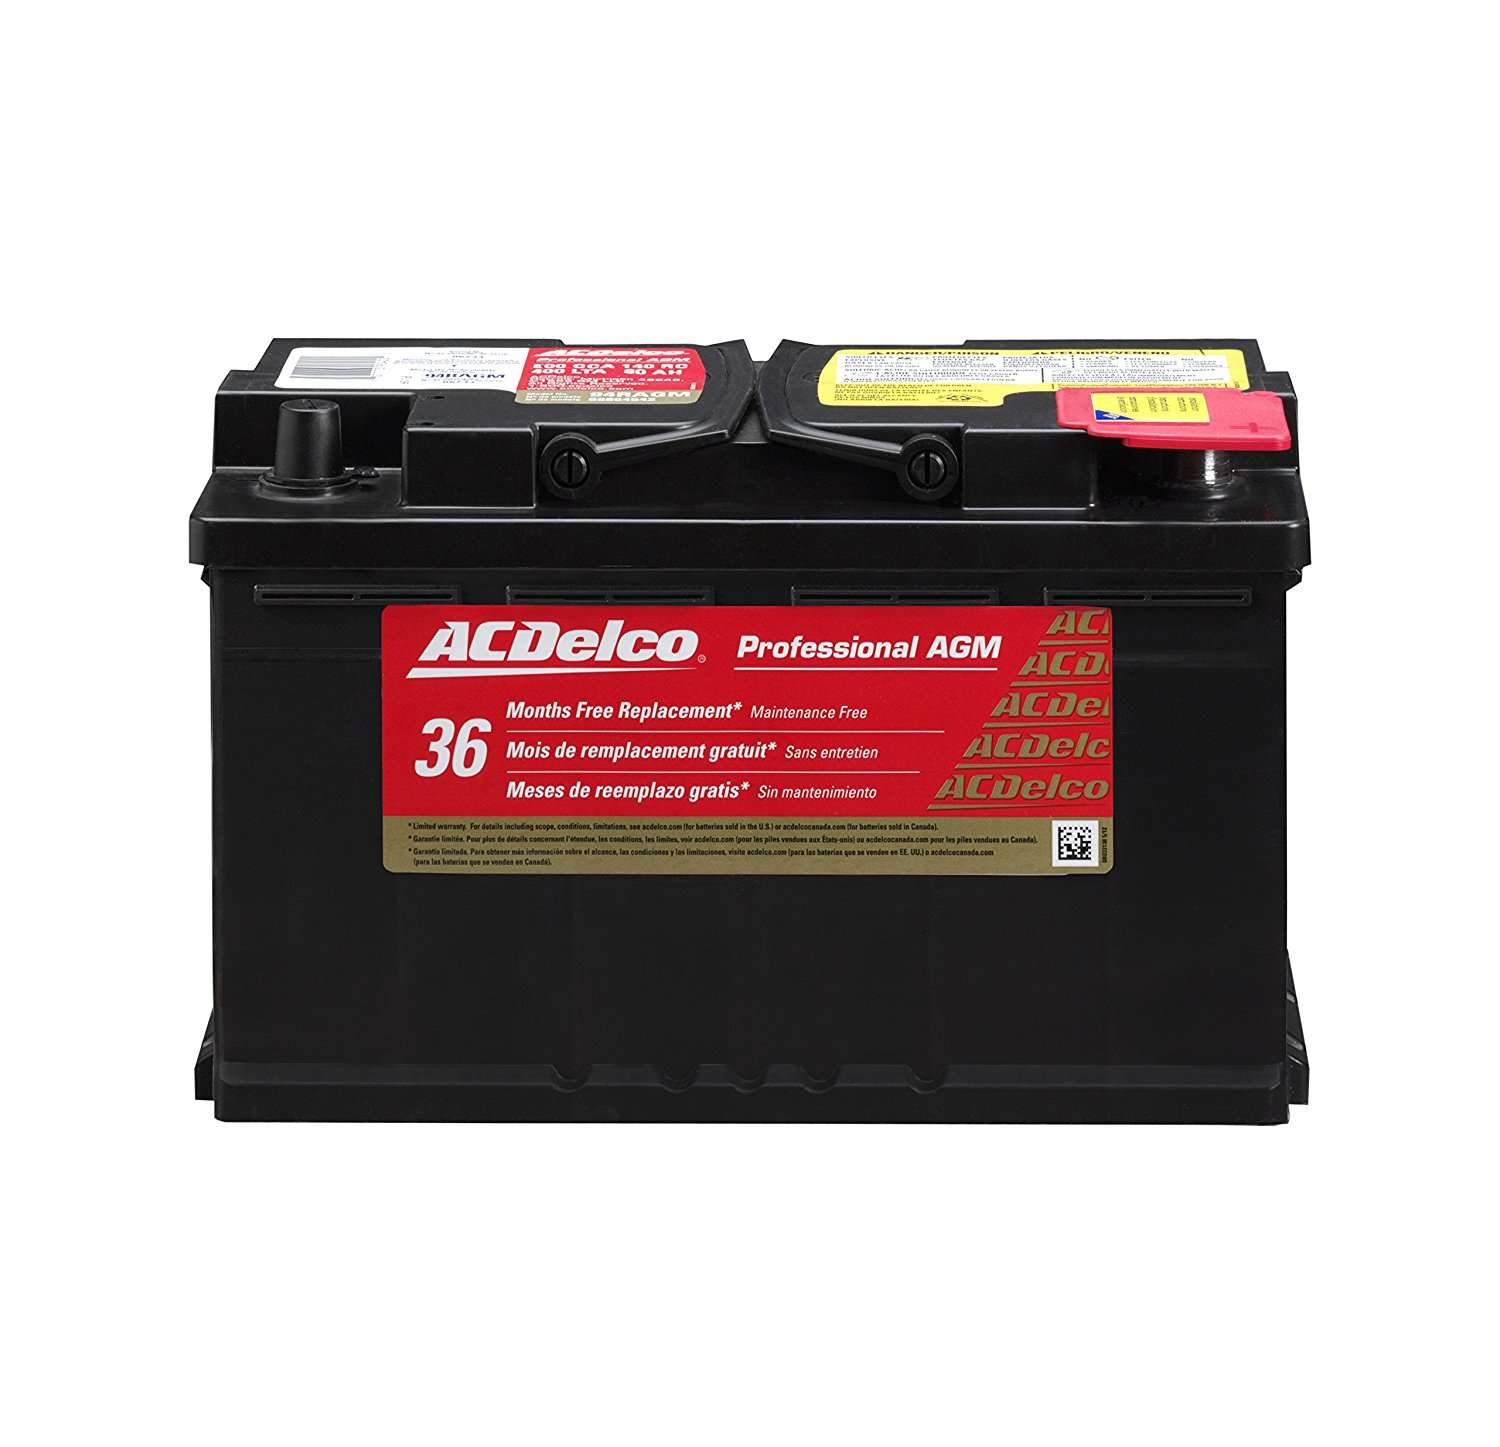 Ac Delco Battery Charger Manual